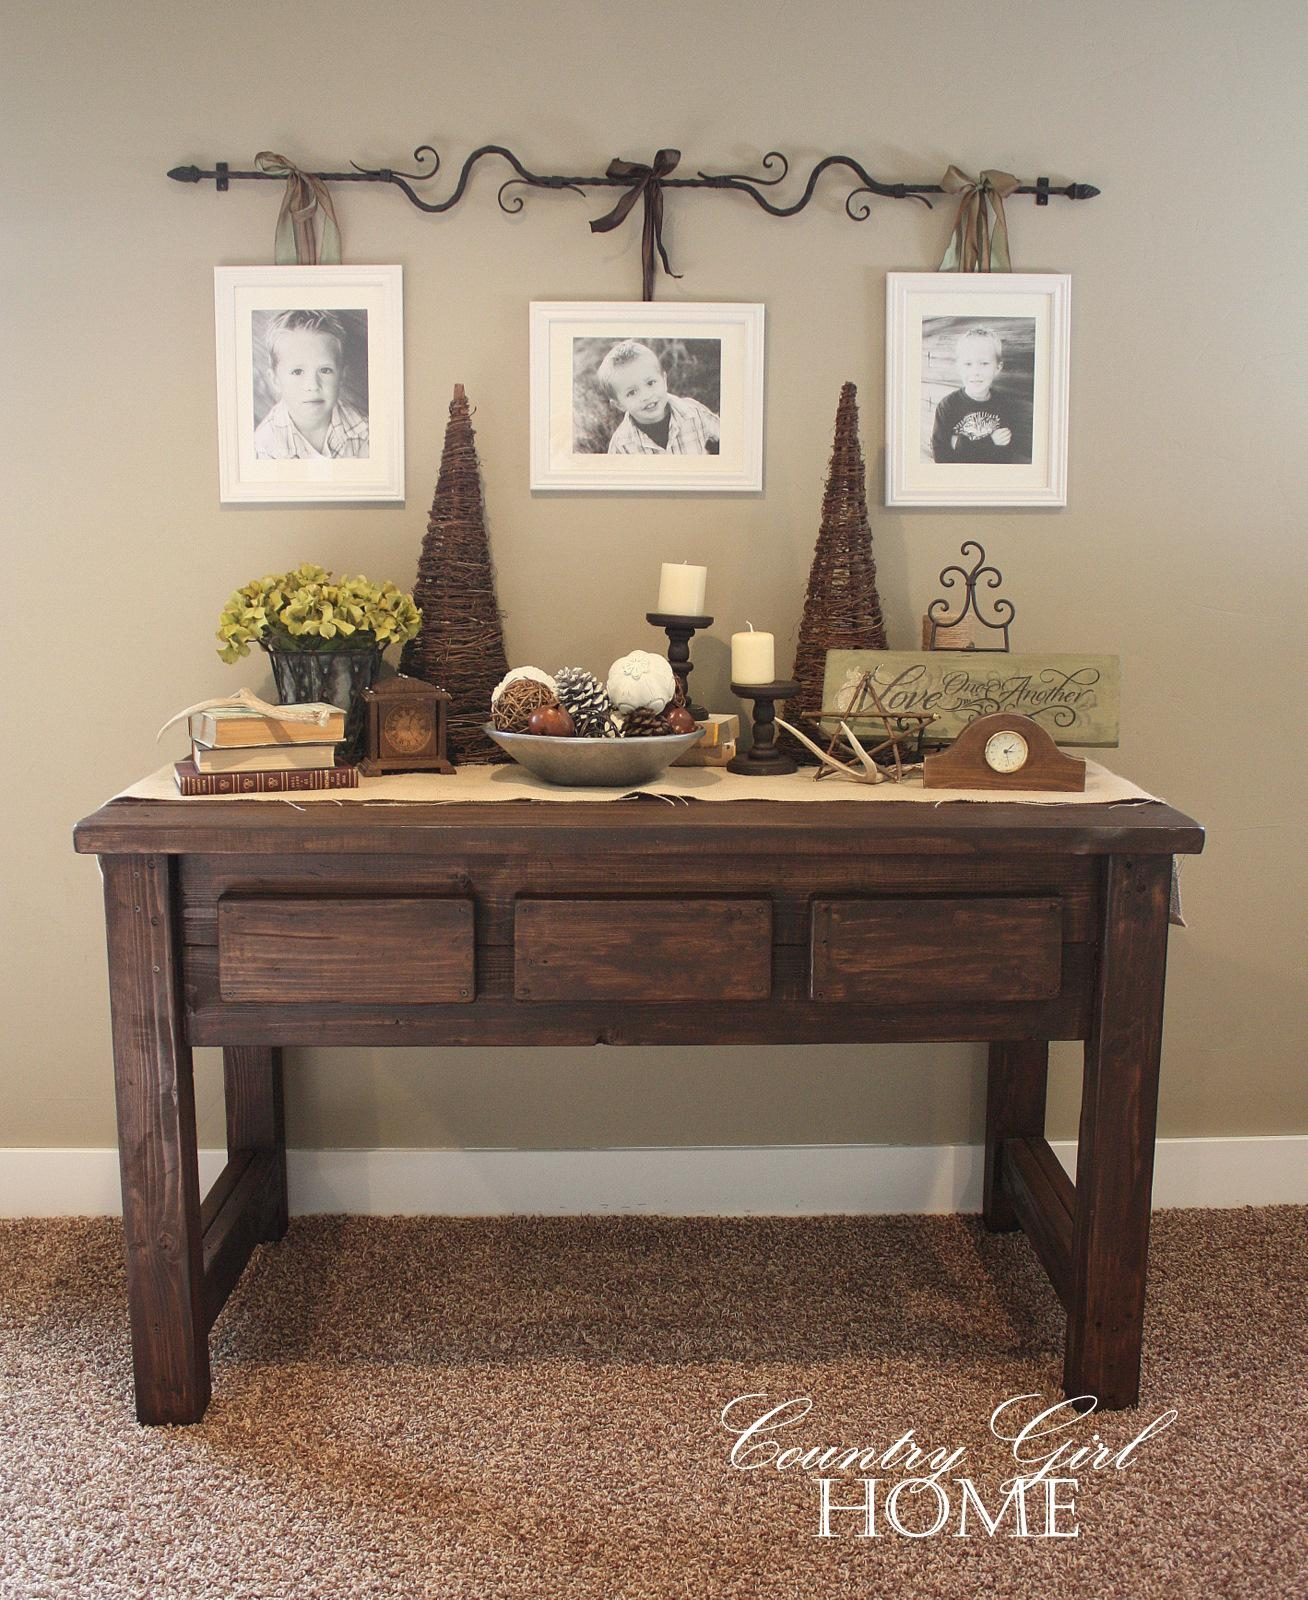 """Country Girl Home : My New """"hand Crafted"""" Sofa Table Throughout Country Sofa Tables (View 2 of 20)"""